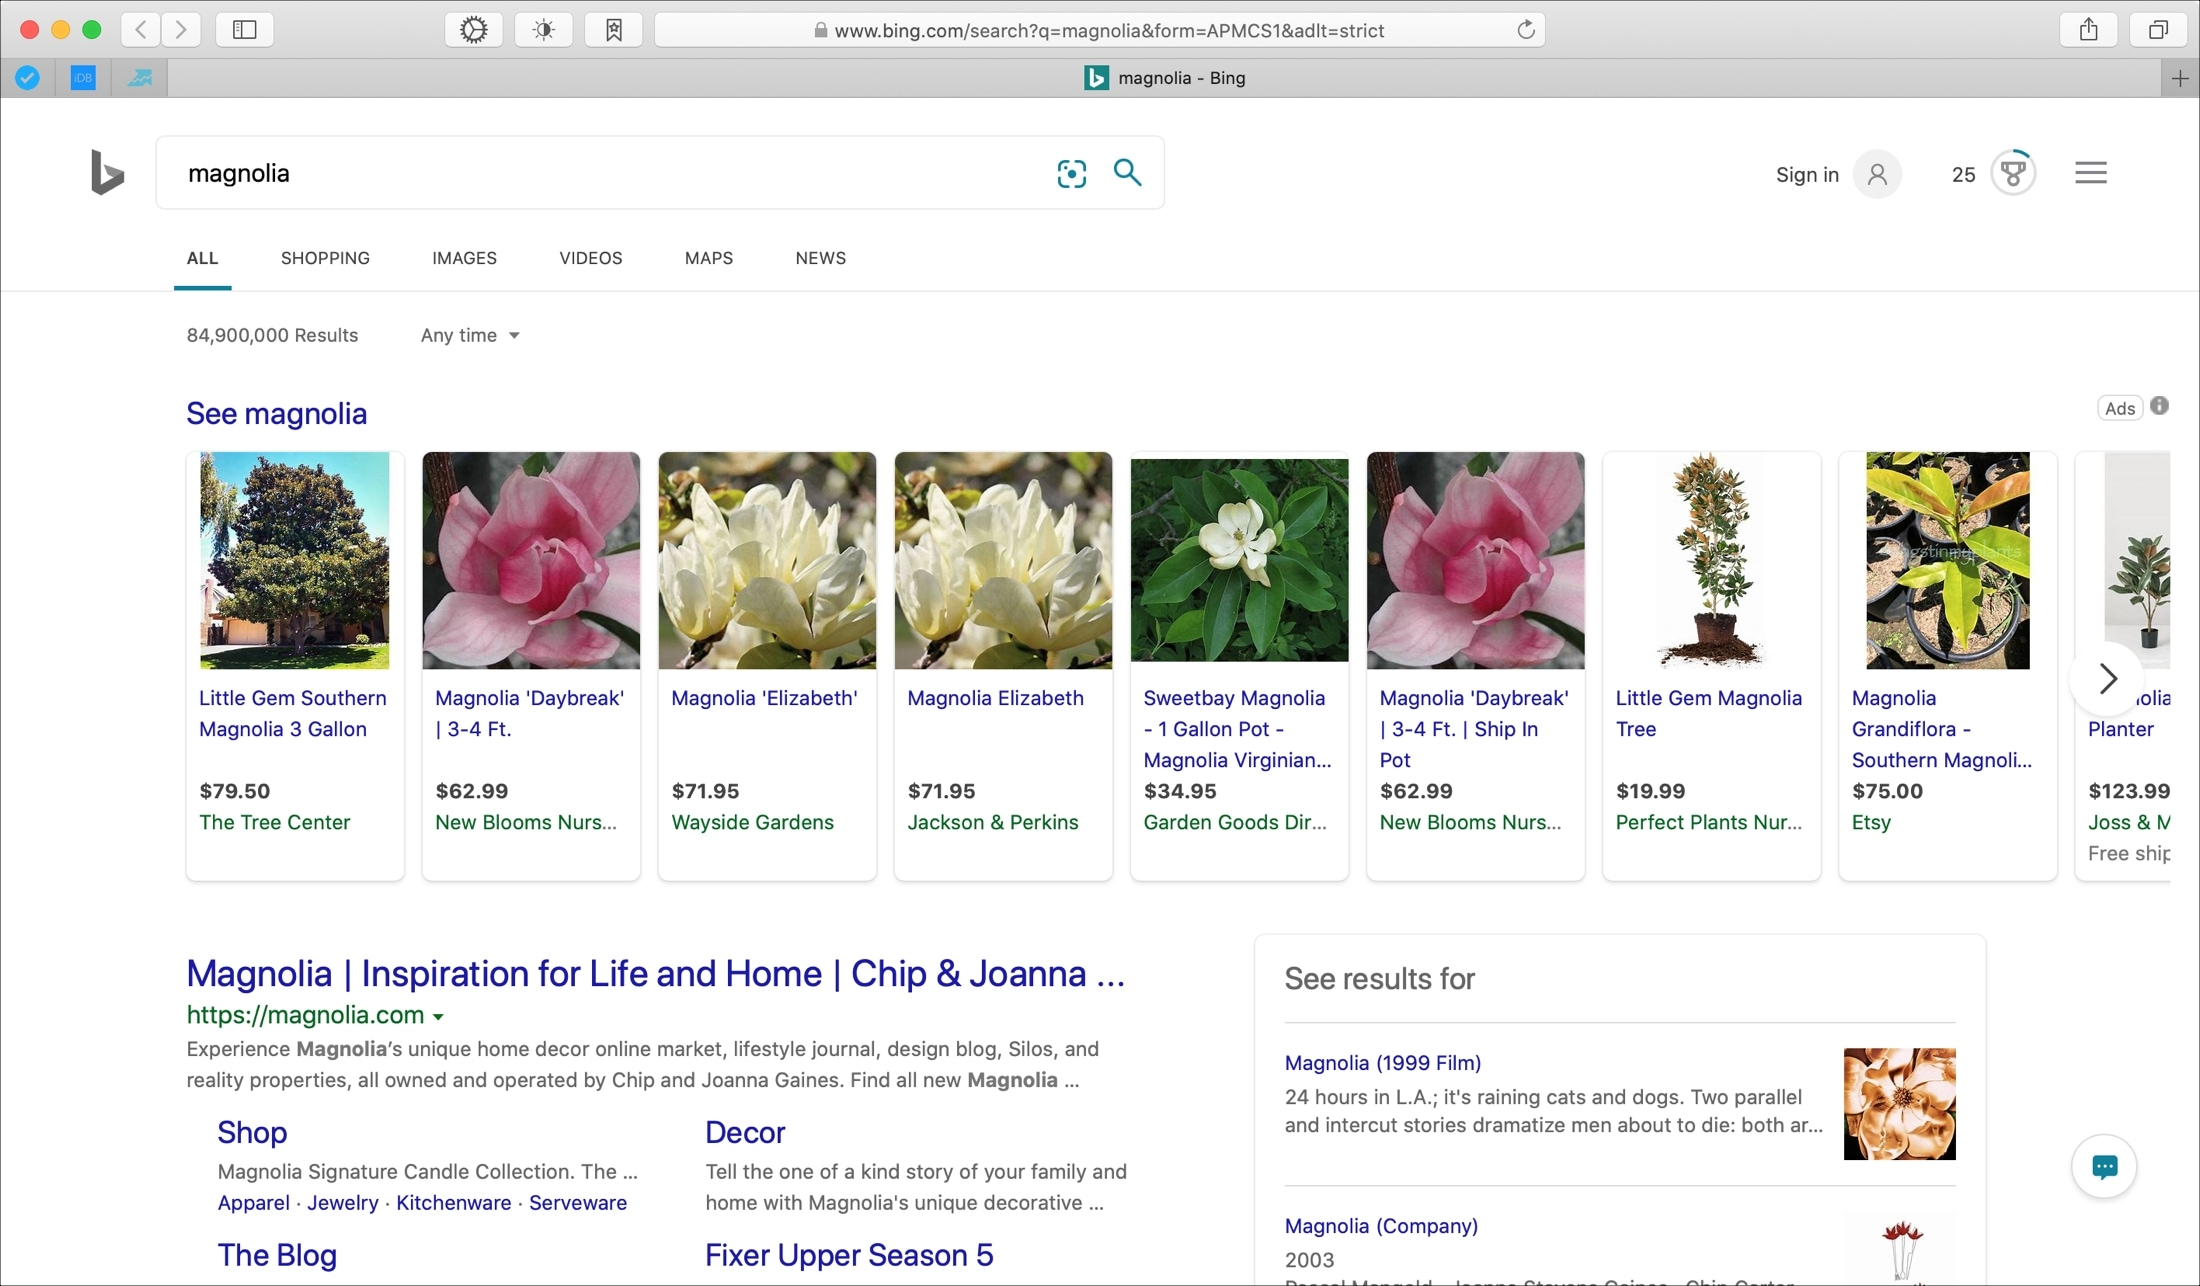 Magnolia search results on Bing